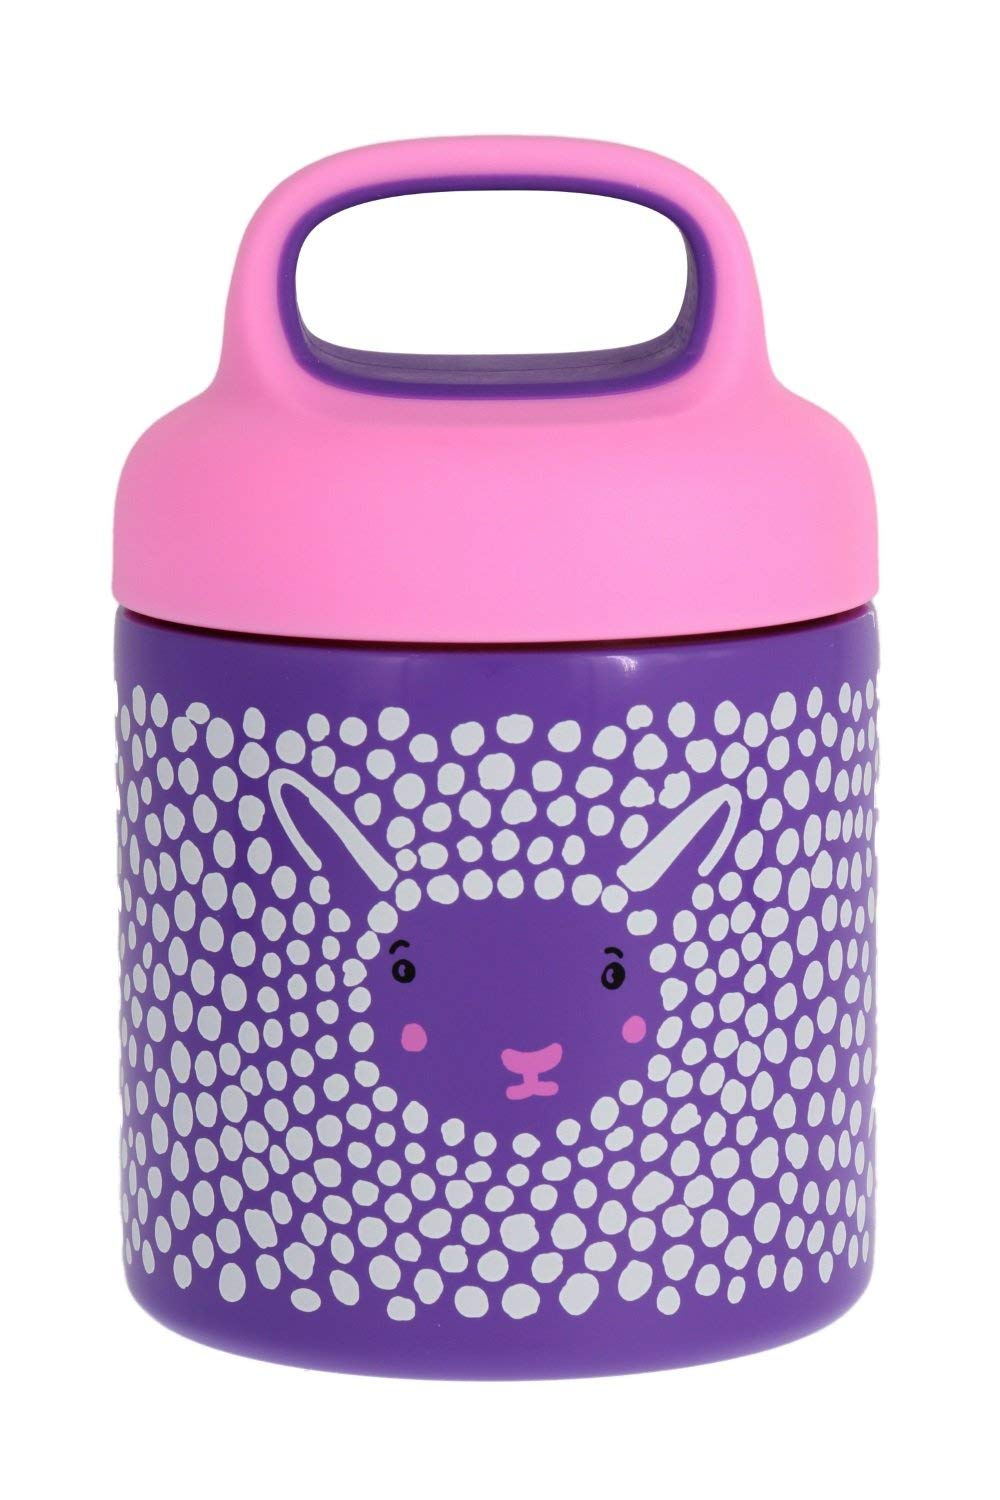 reduce stainless steel vacuum insulated food jar with carrying handle, 10oz- Furry Friends Design, Pink Bear – Ideal for Hot or Cold Foods, Fits in Most Lunchboxes, BPA-free & Sweat-proof